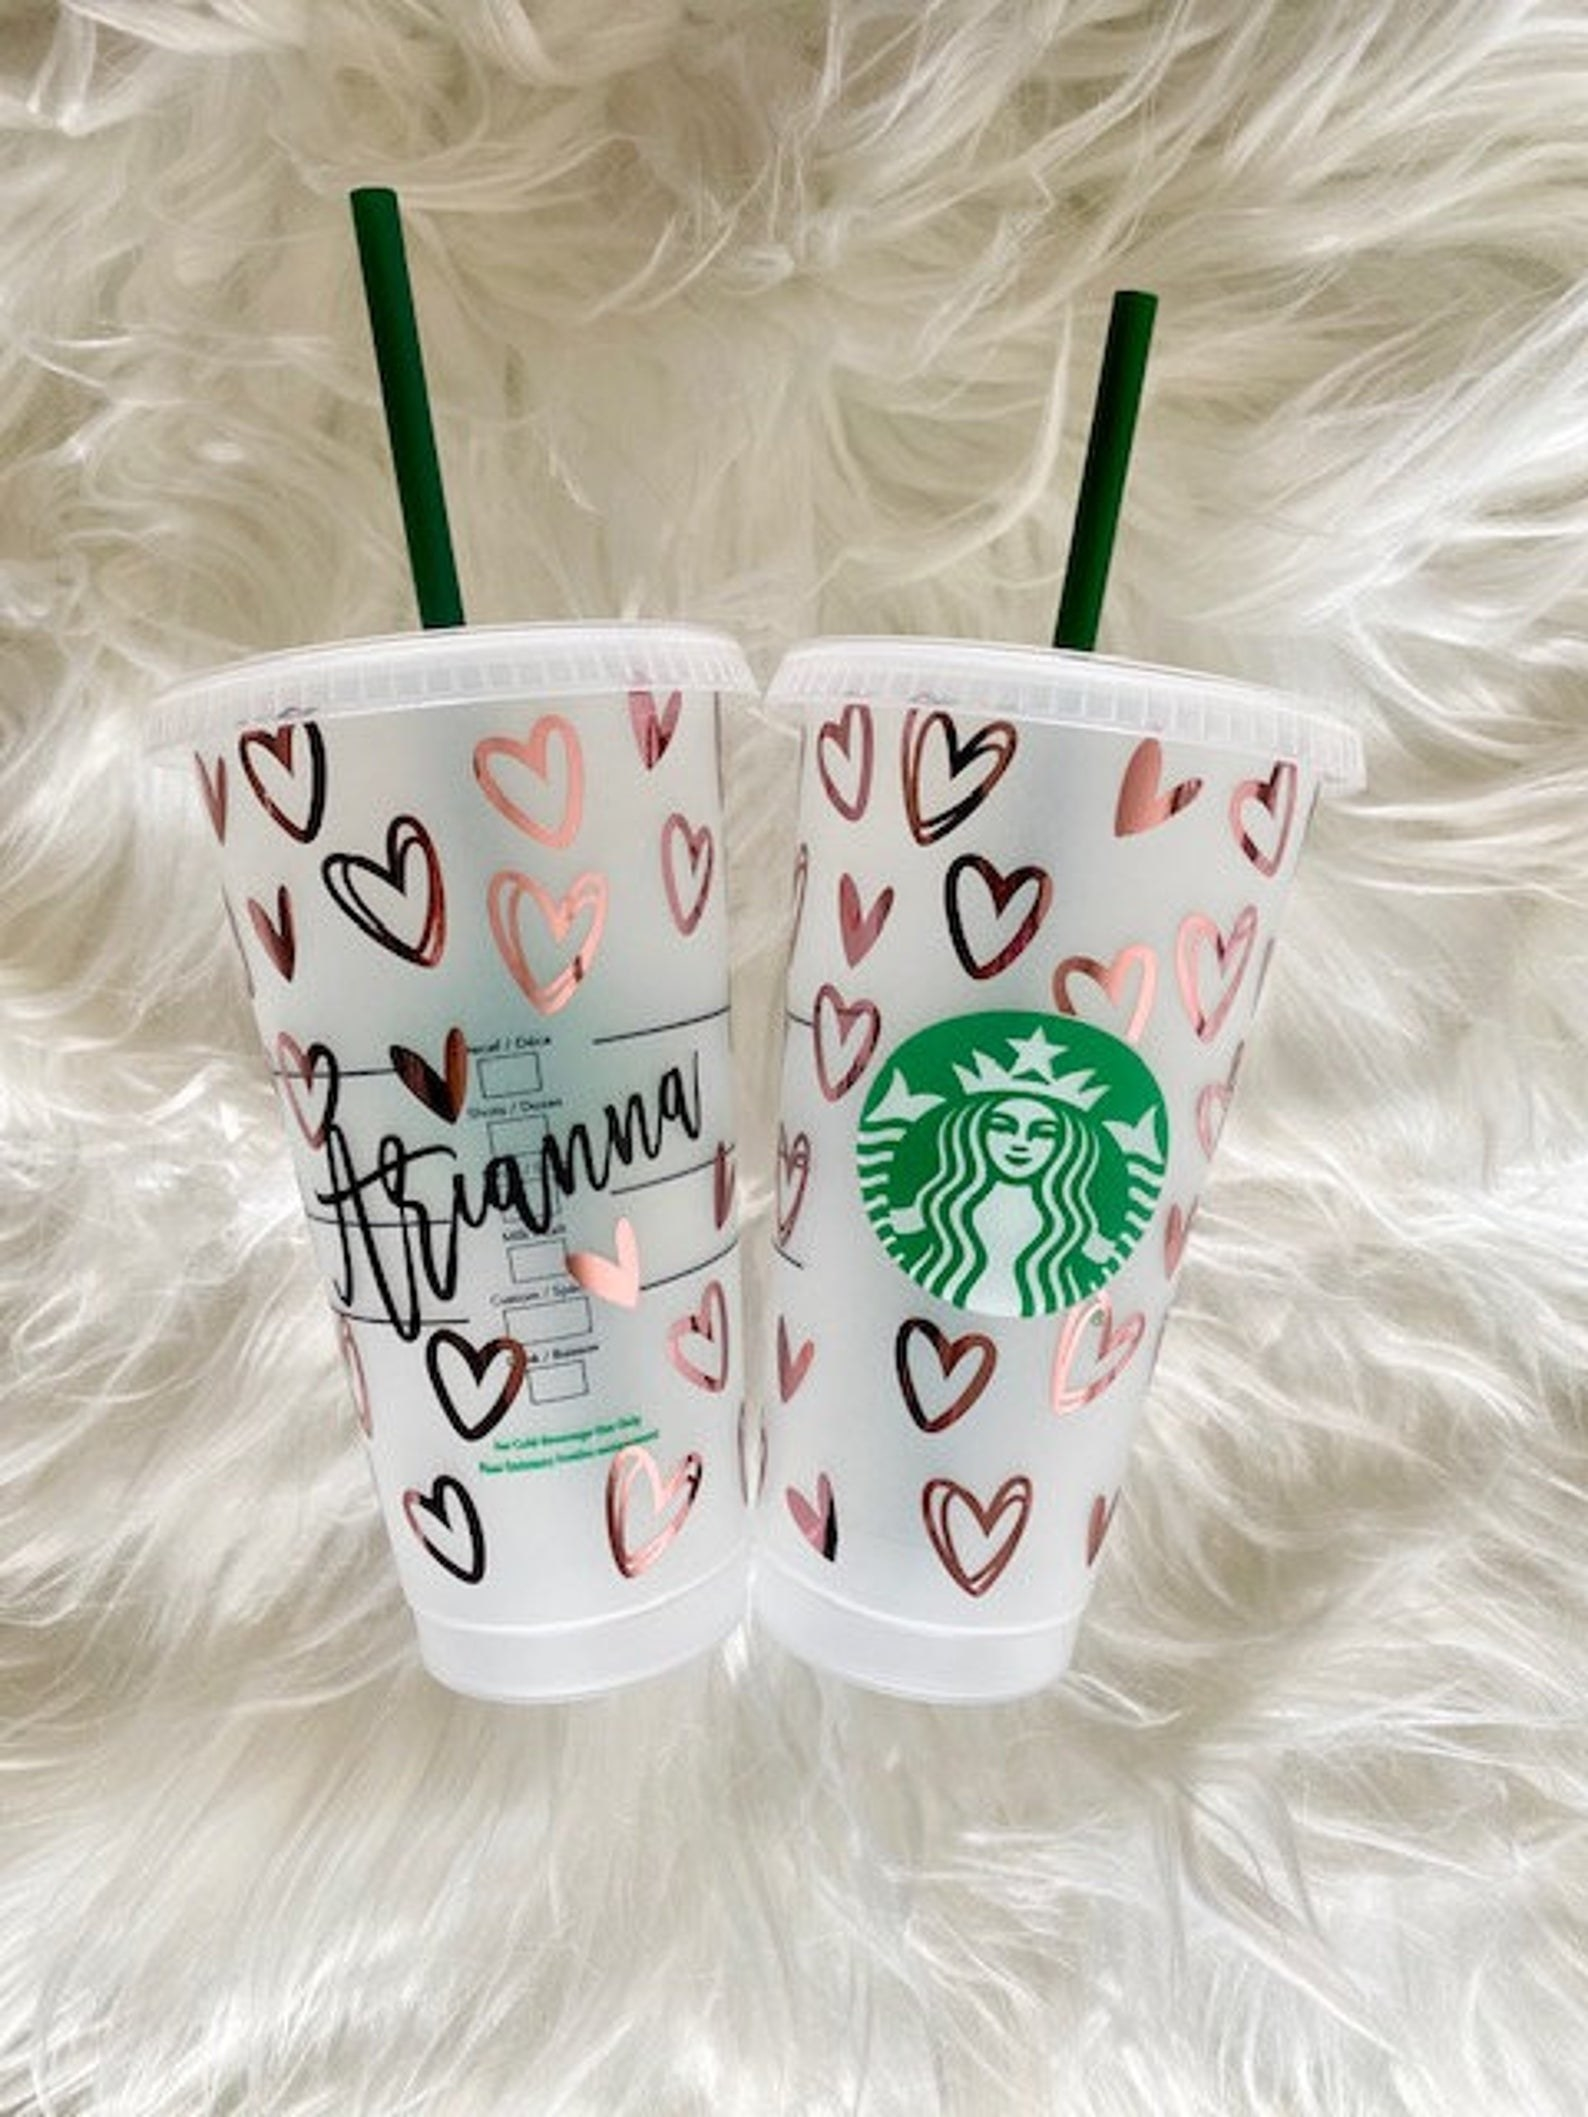 A reusable clear Starbucks cup with a straw that has hearts and a name on it